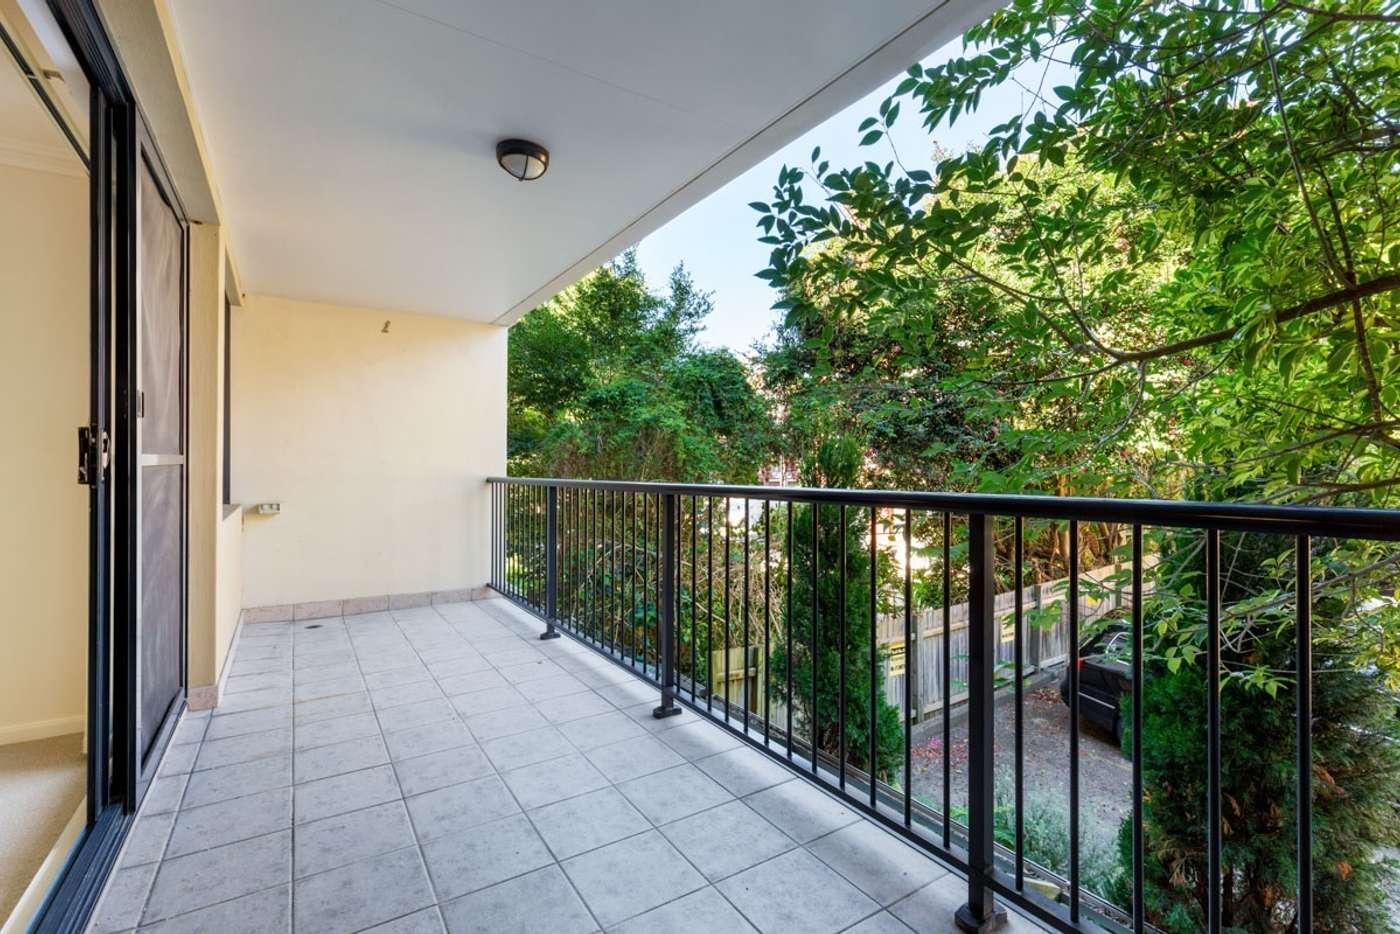 Main view of Homely unit listing, 2/3 Havilah Street, Chatswood NSW 2067